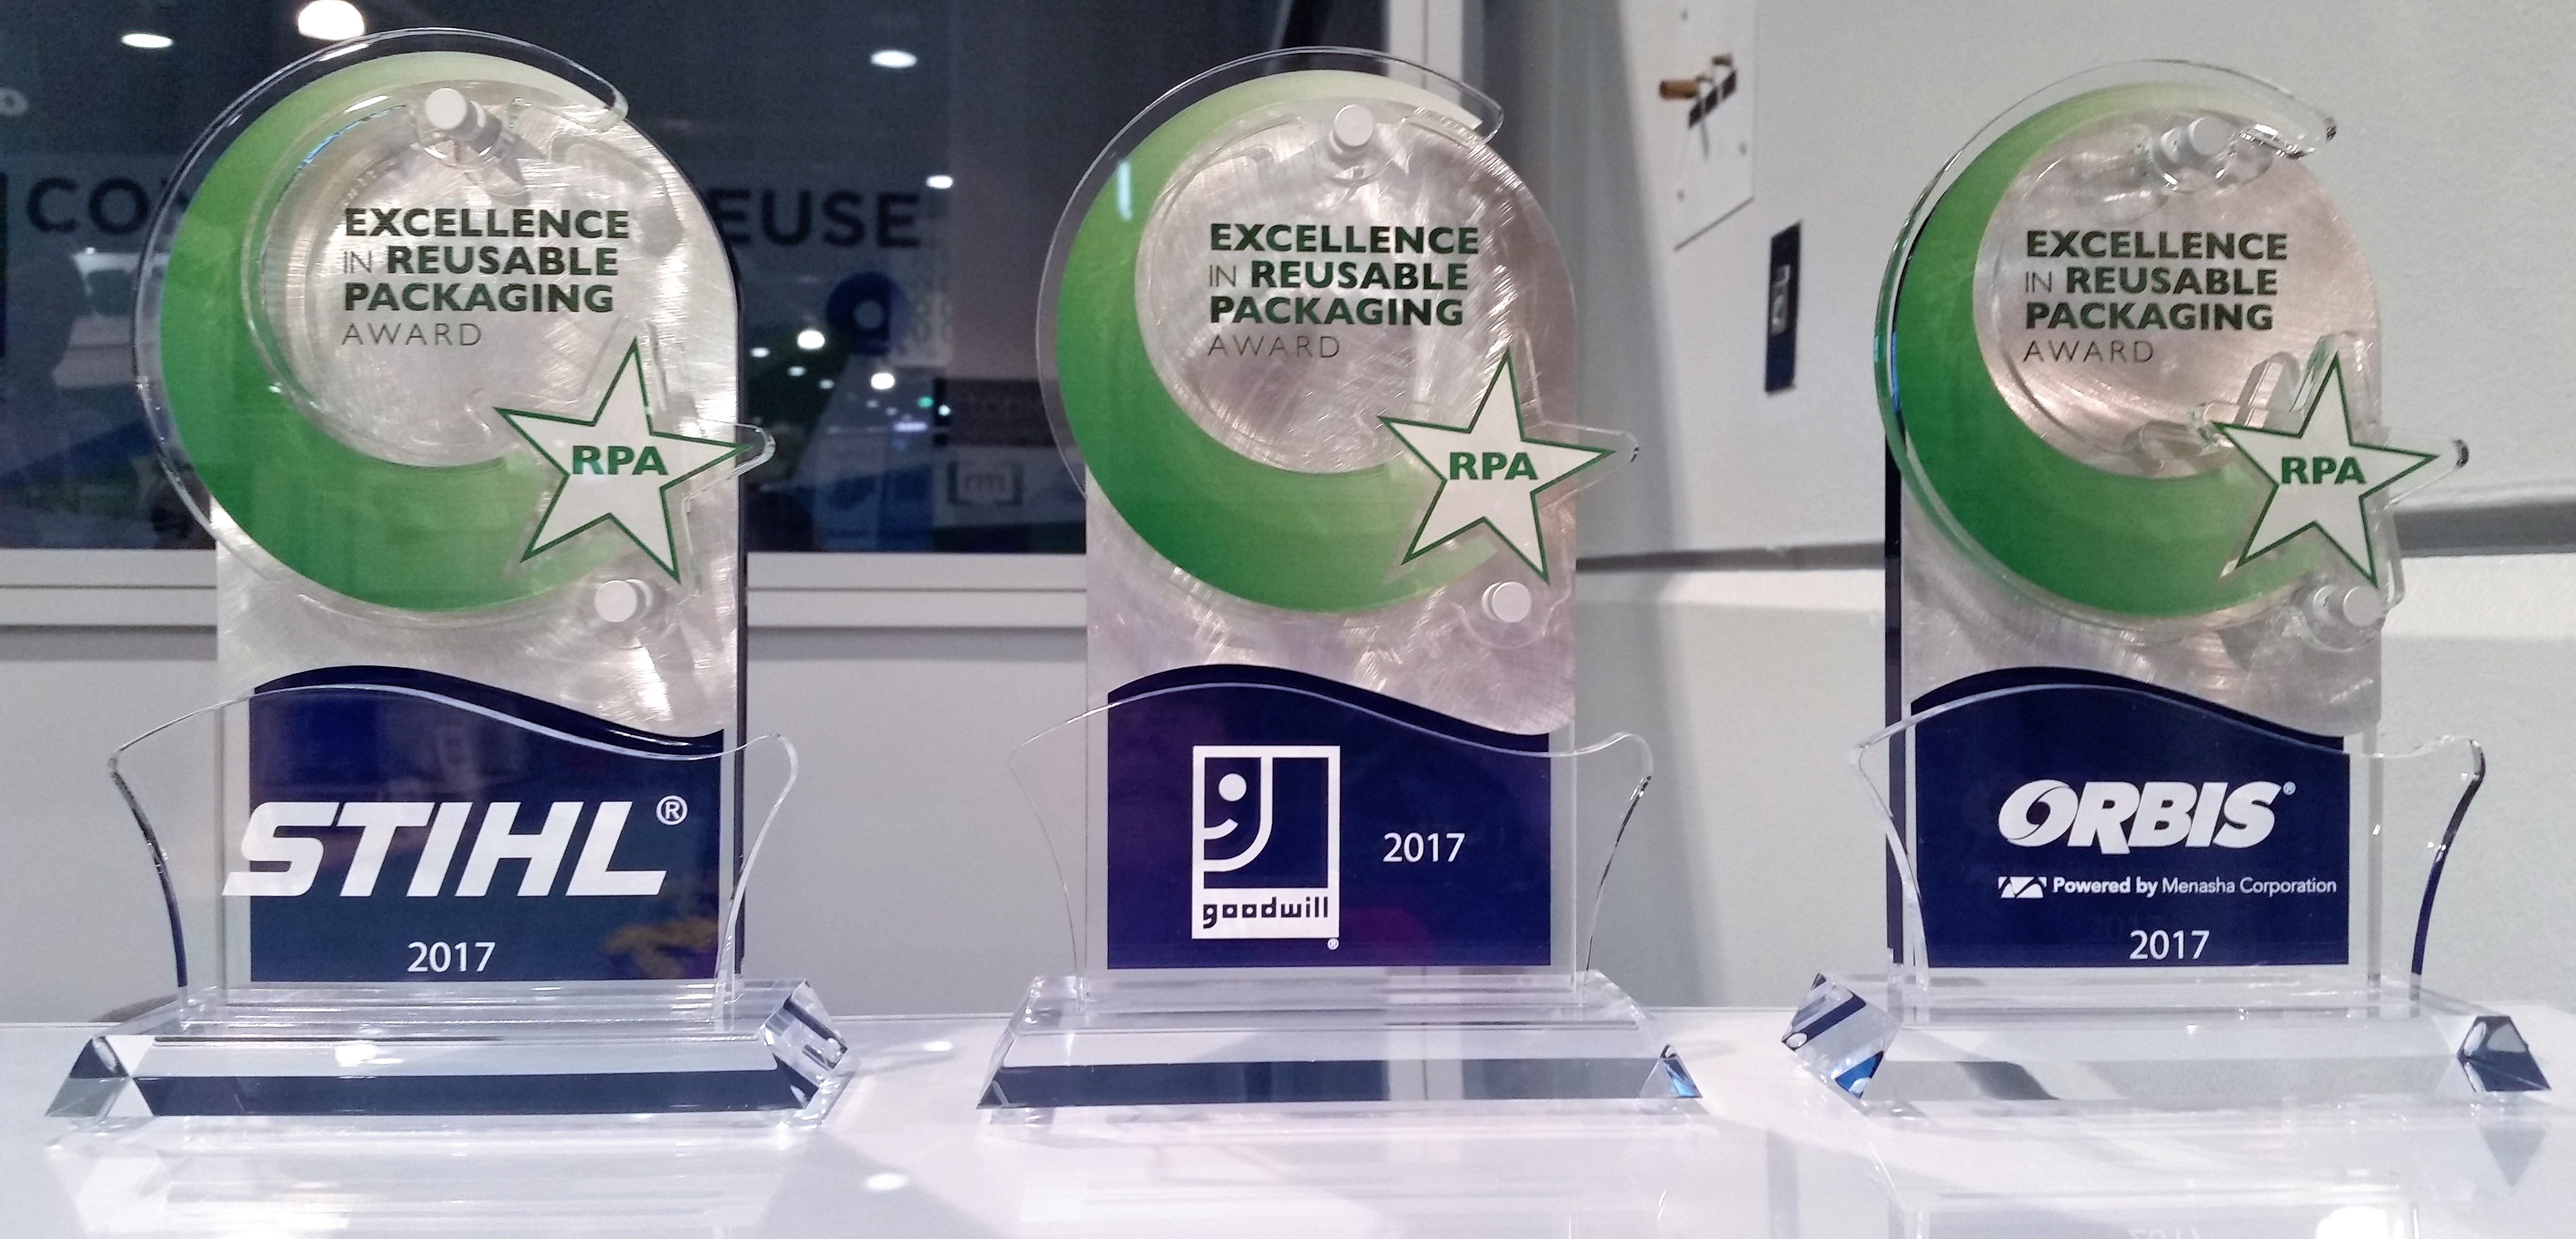 Excellence in Reusable Packaging: Looking Back and Looking Ahead